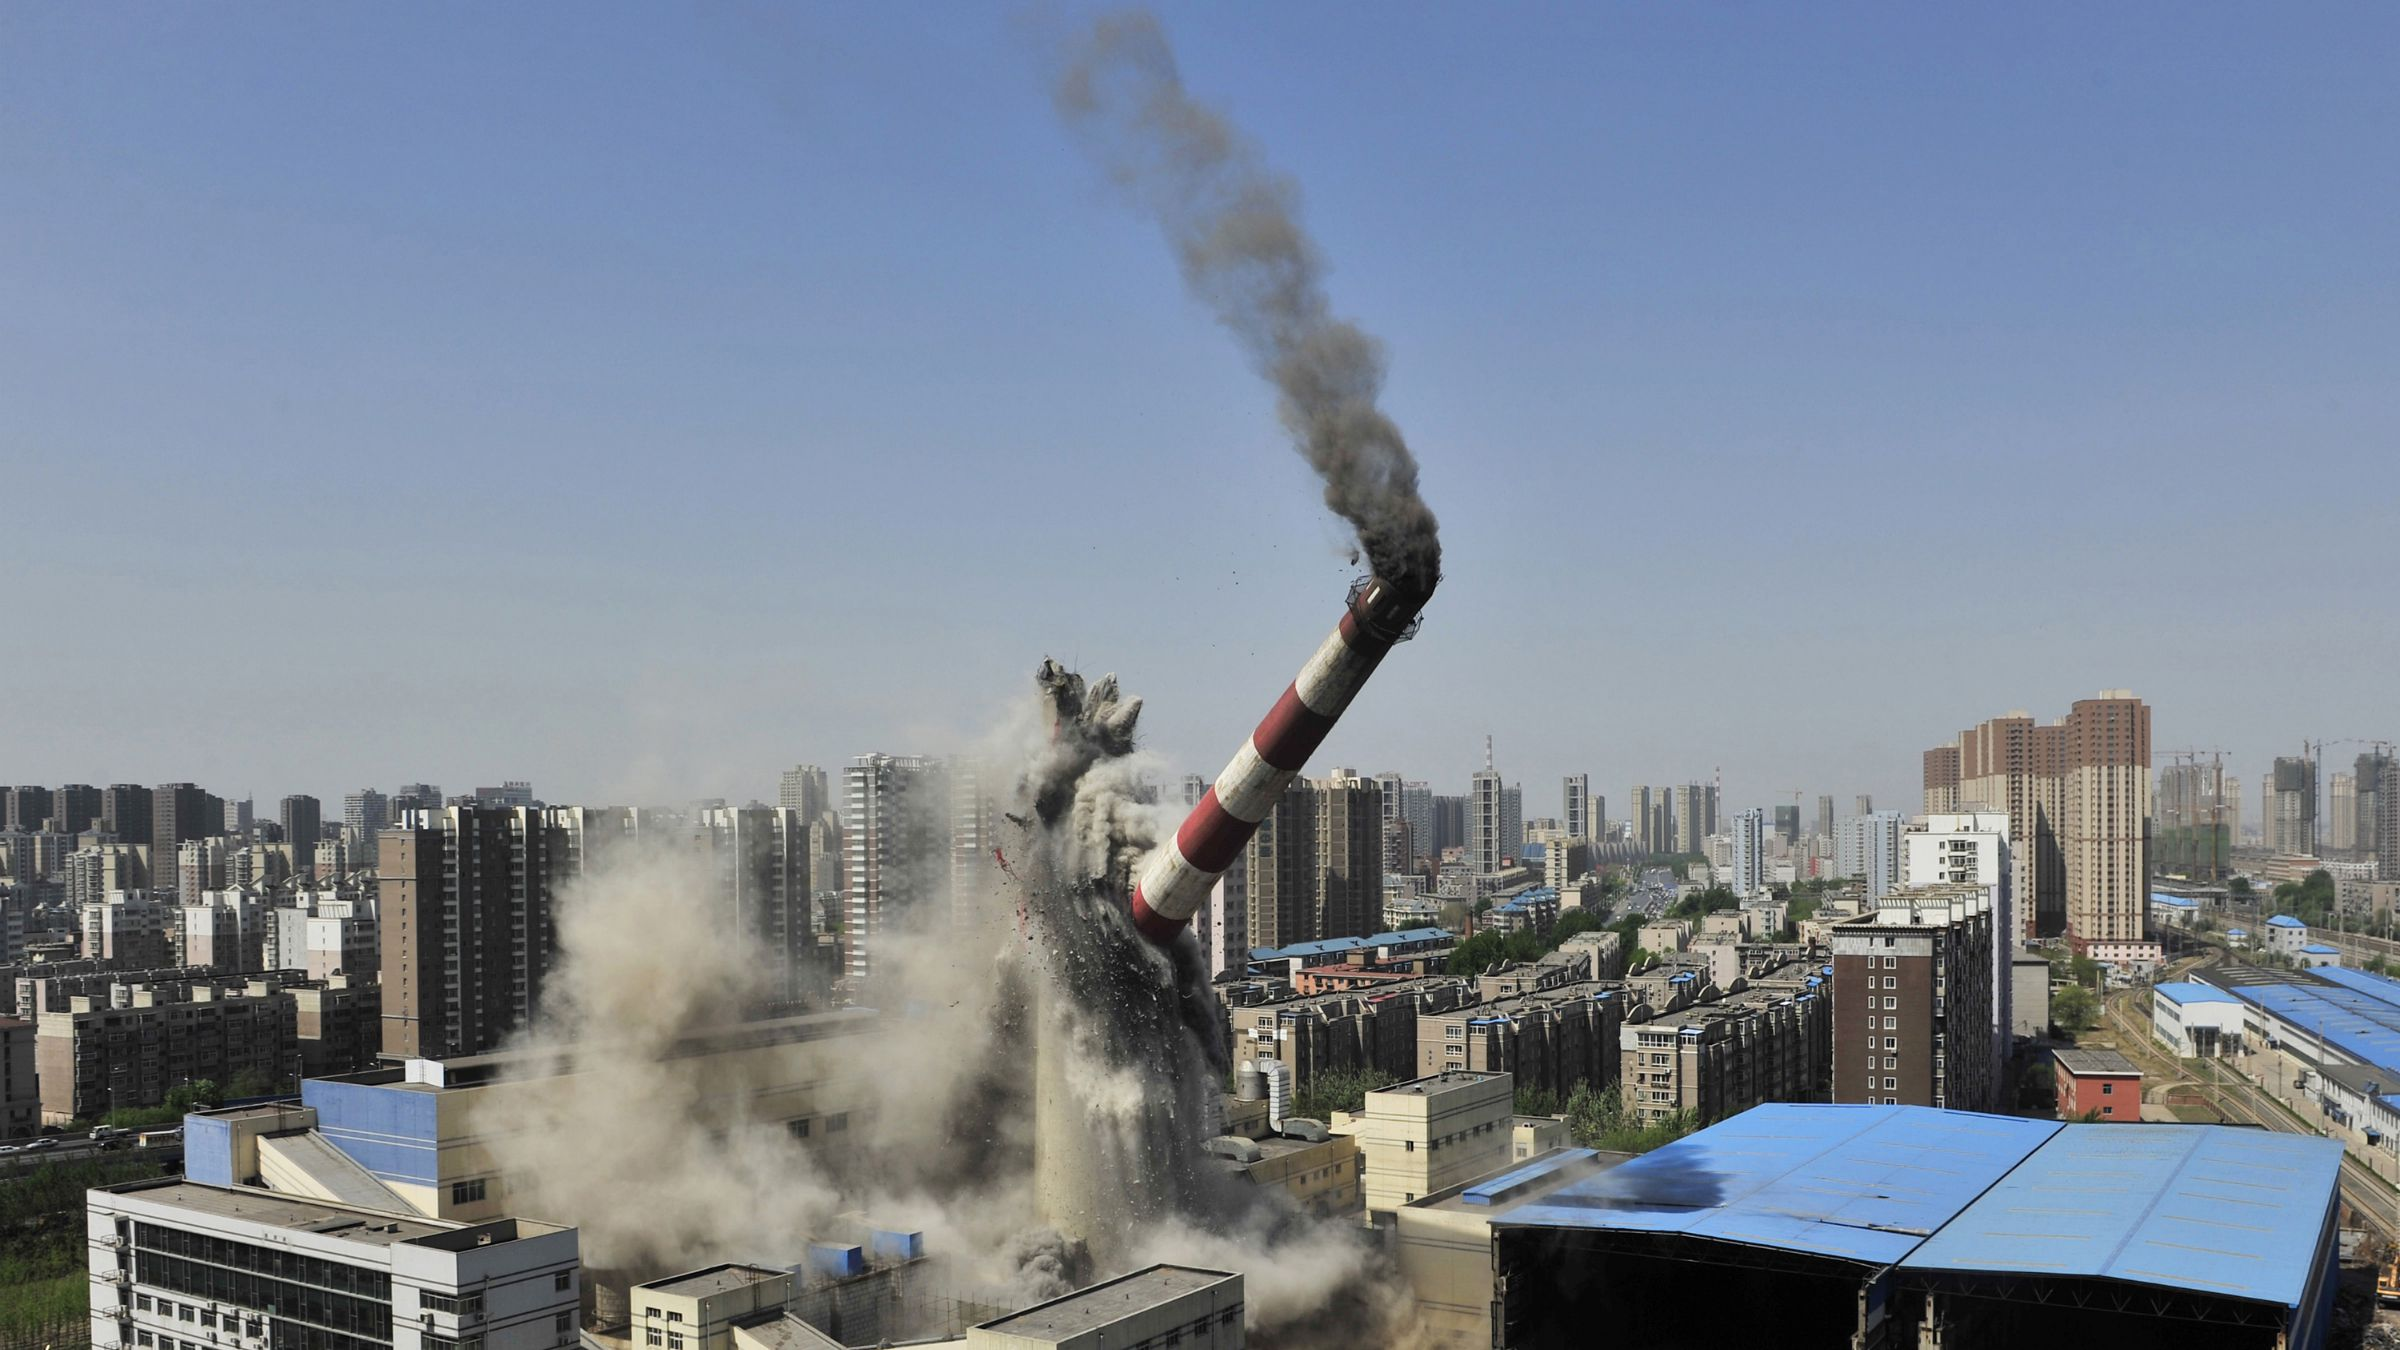 The provincial highest chimney collapses as it is demolished by explosives in Shenyang, Liaoning province, April 28, 2014. The 150-metre-high chimney used to be part of a local heating factory, according to local media. china fiscal stimulus spending real estate property housing collapse